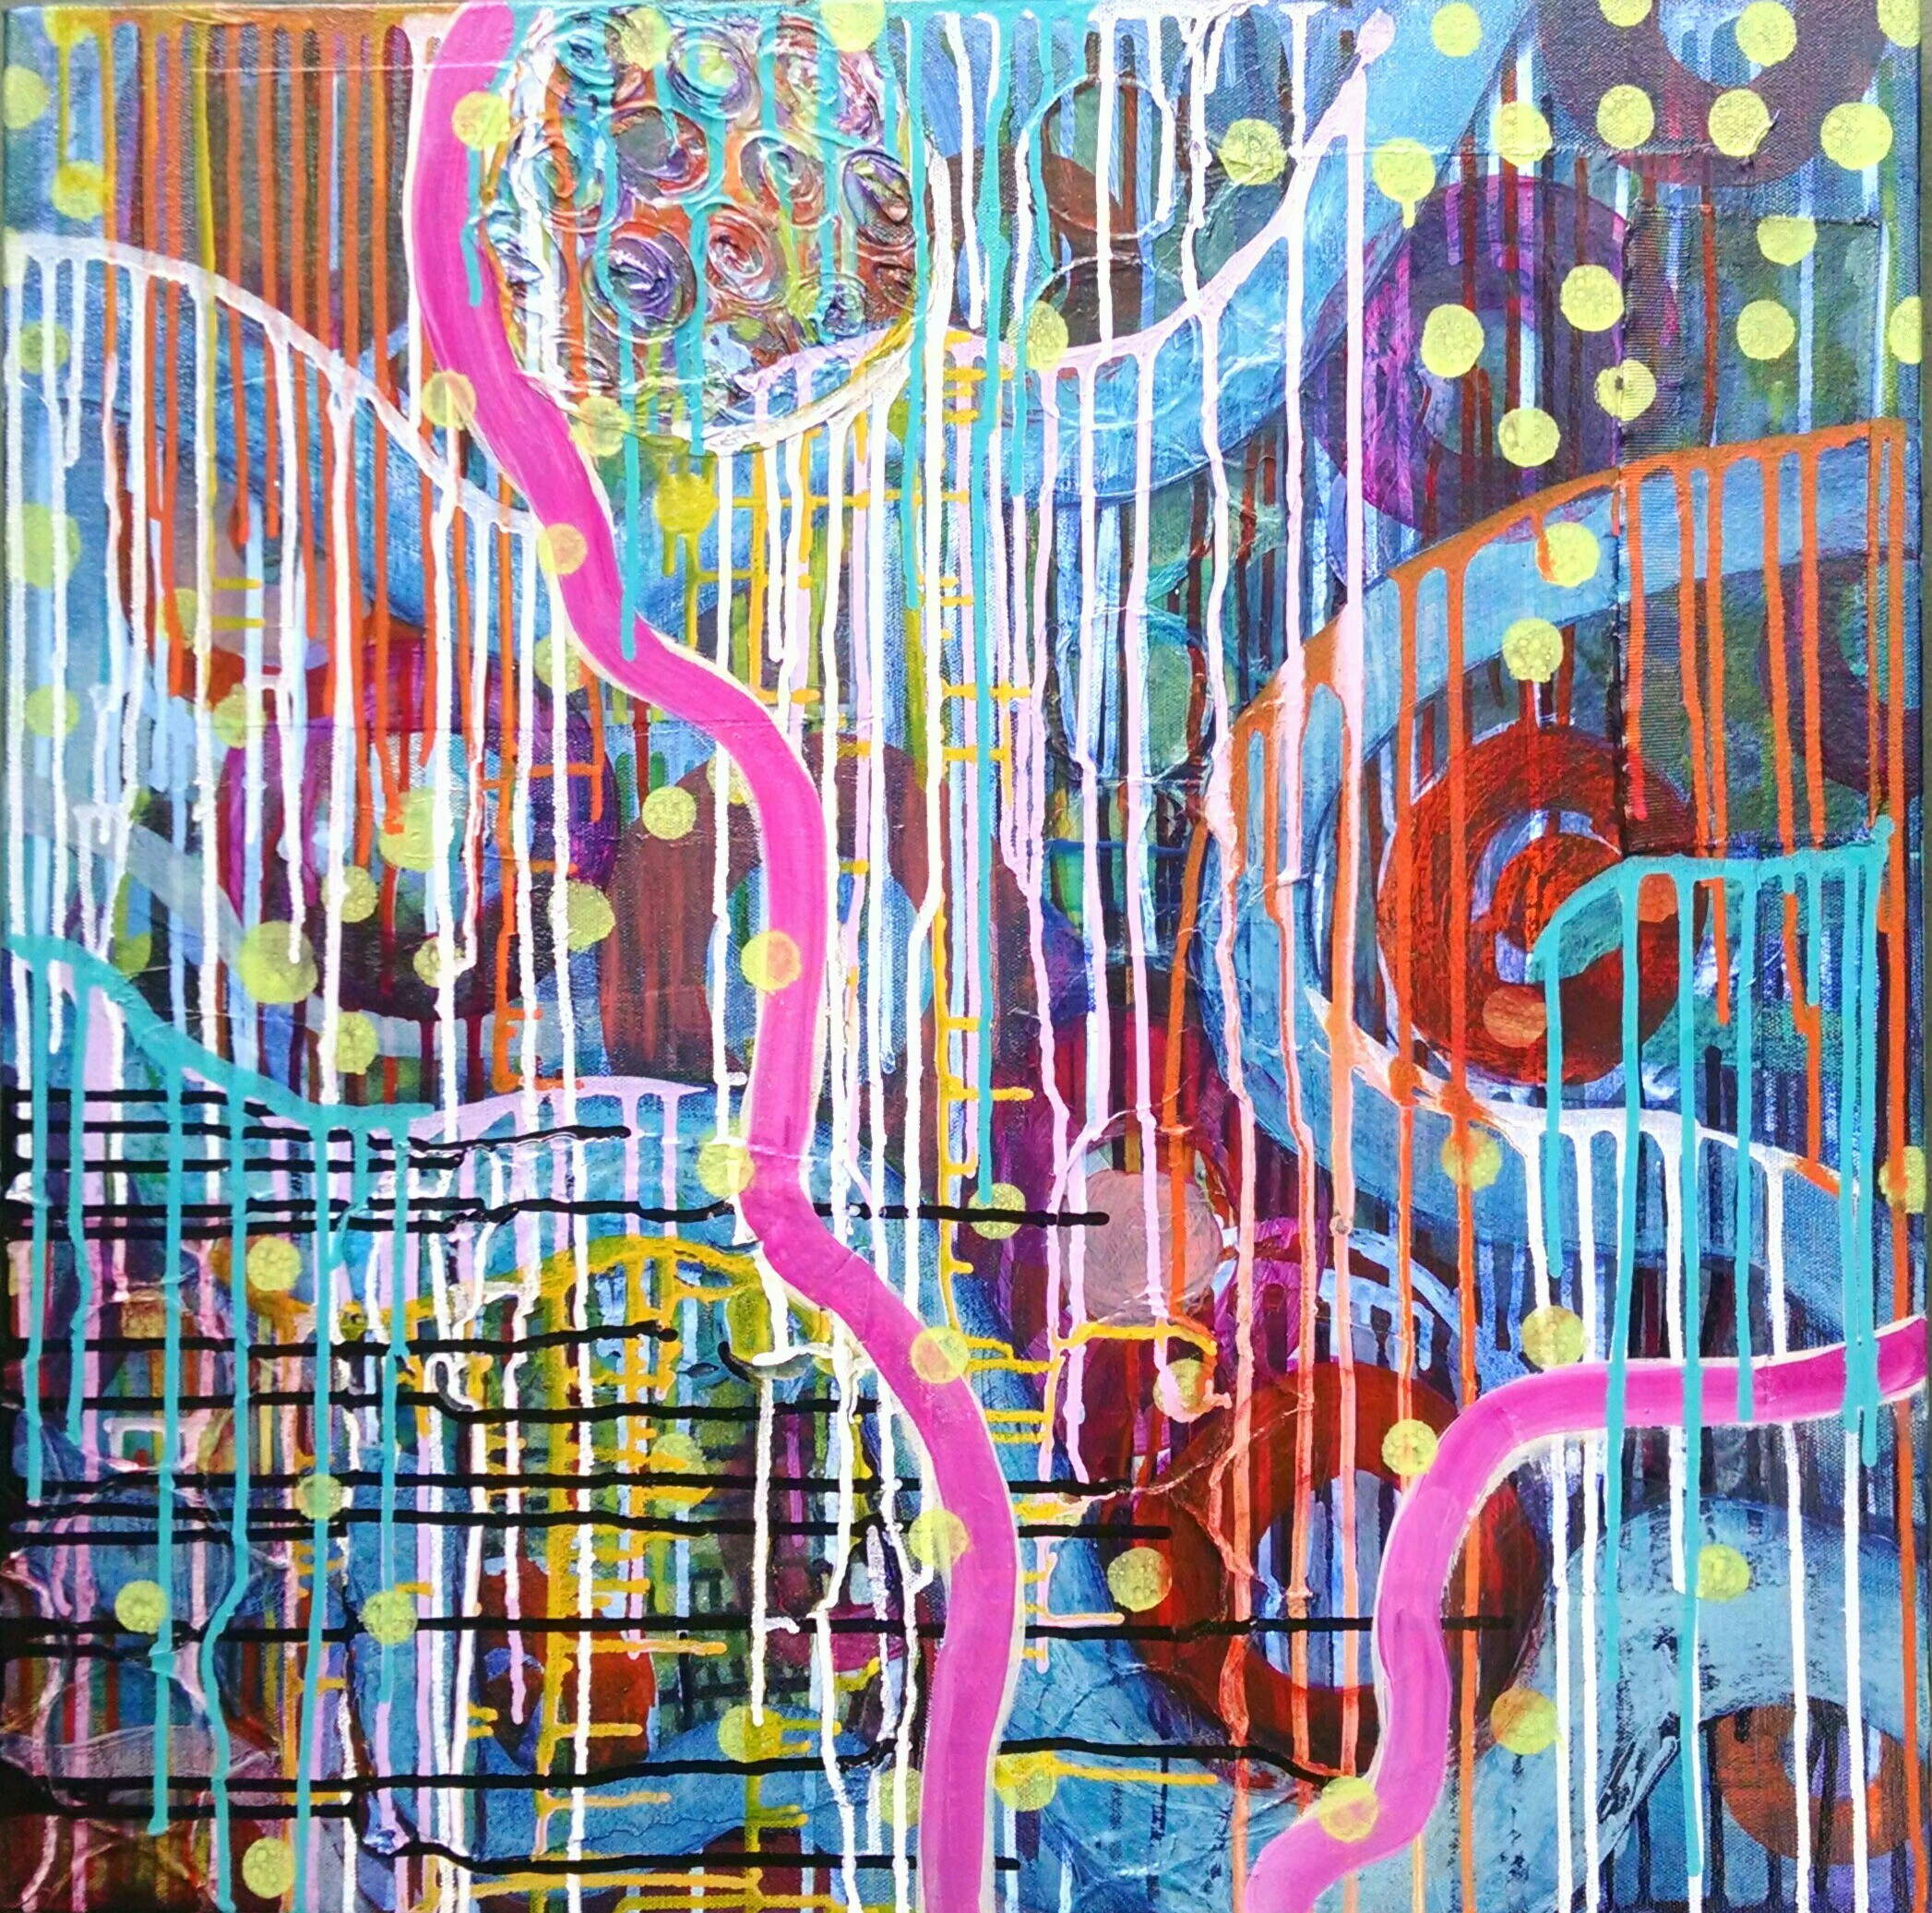 """Christine Sauer """"Marvels and Mysteries II"""" 24x24"""" $900, acrylic, mixed media on canvas"""